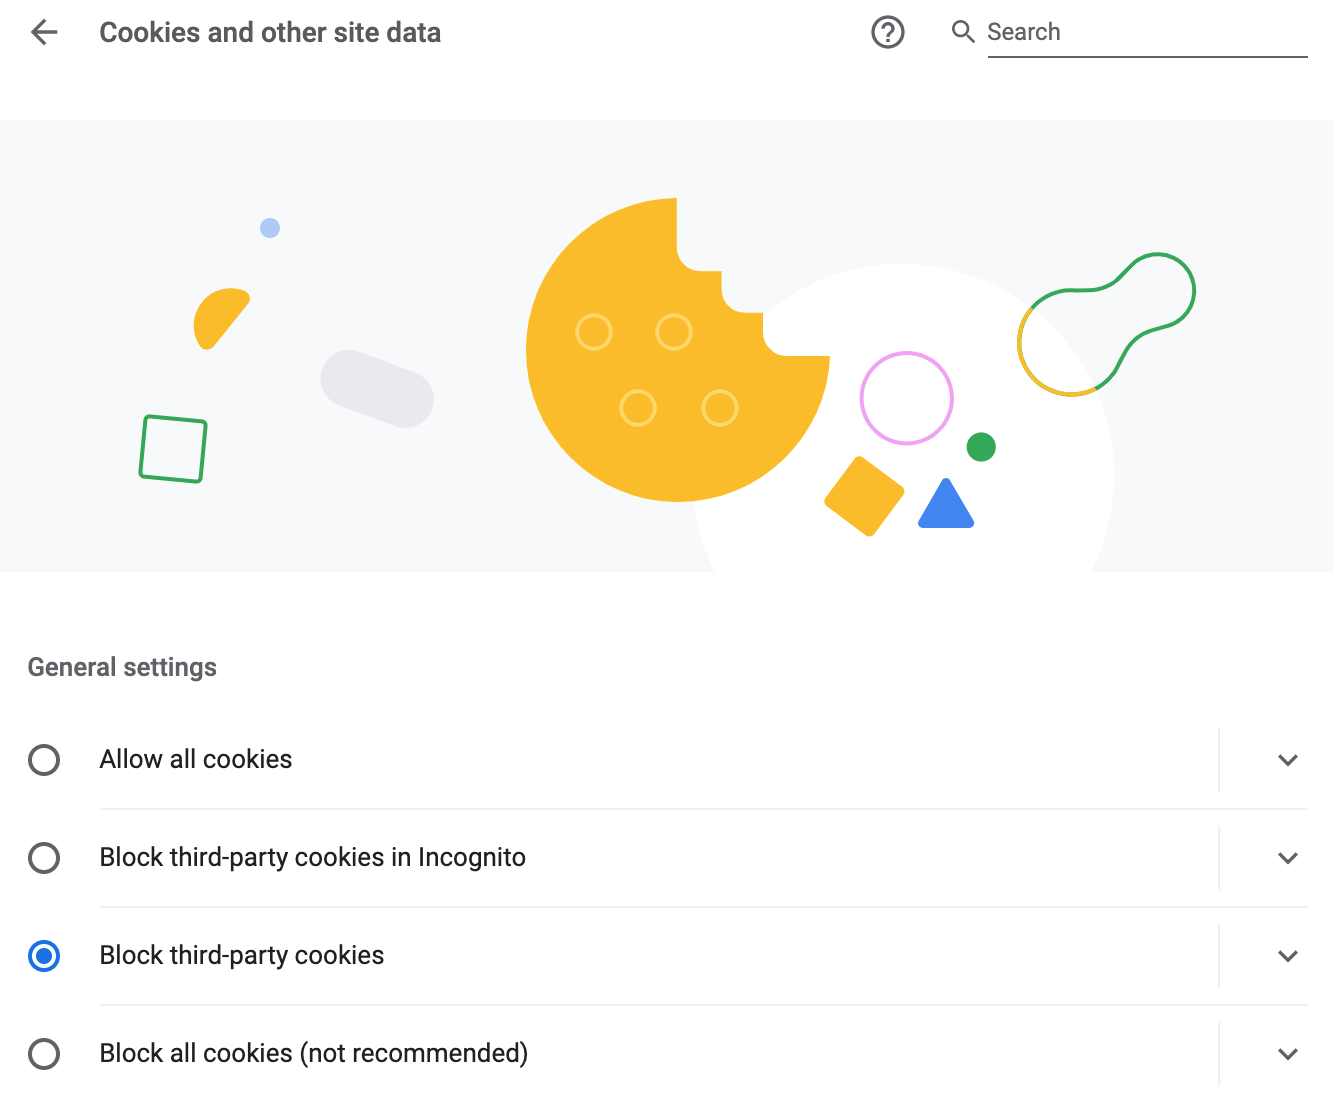 general settings for cookies and other site data on google chrome browser